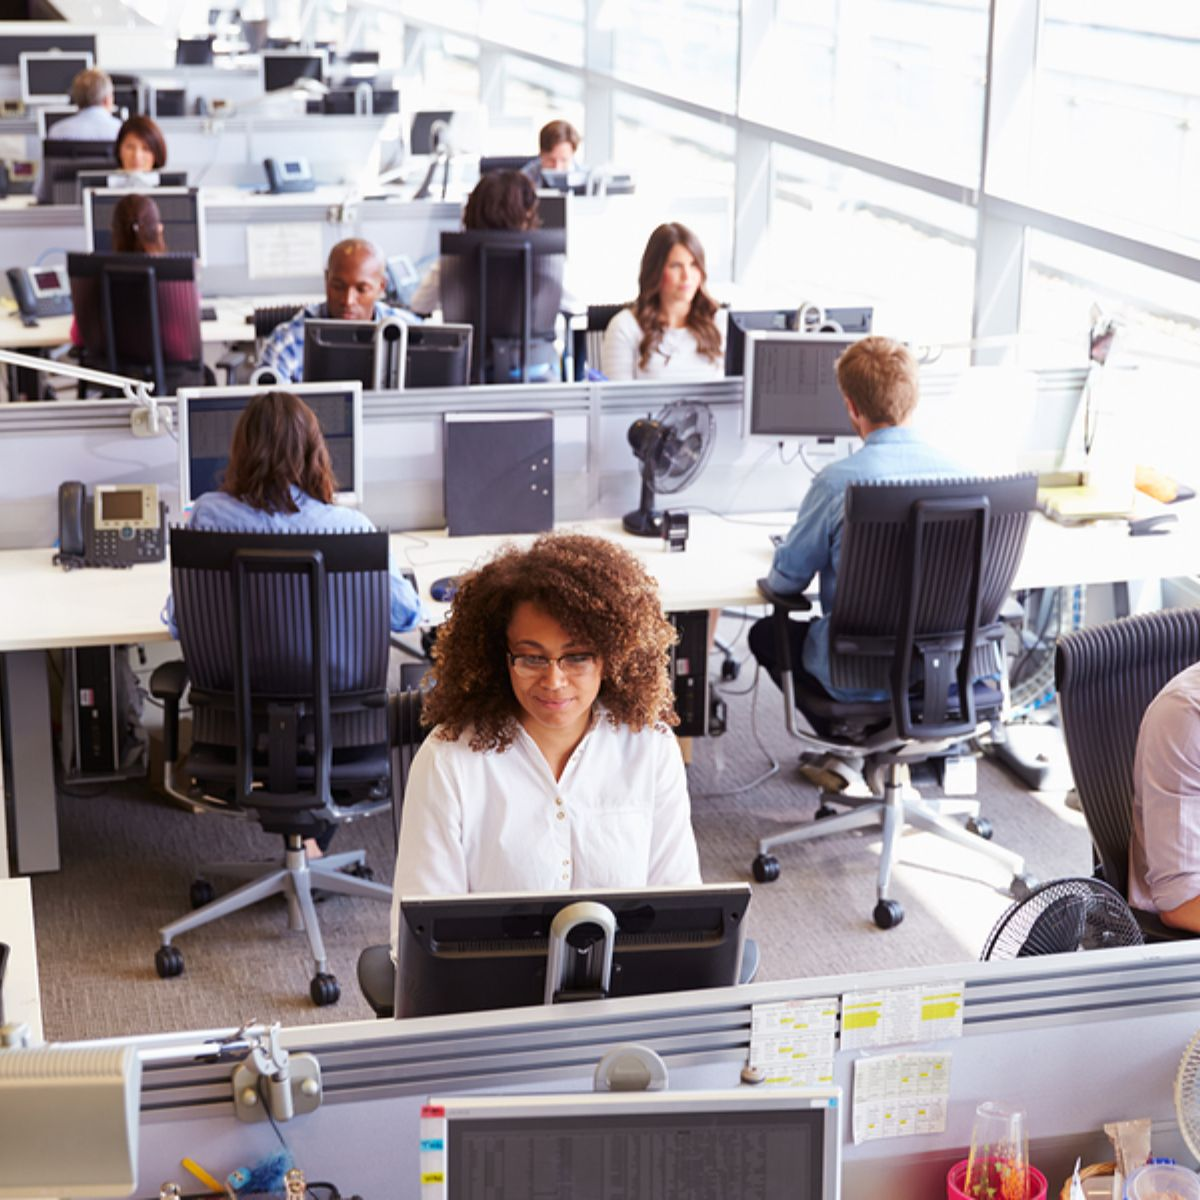 How Can I Reduce Noise in My Workplace?